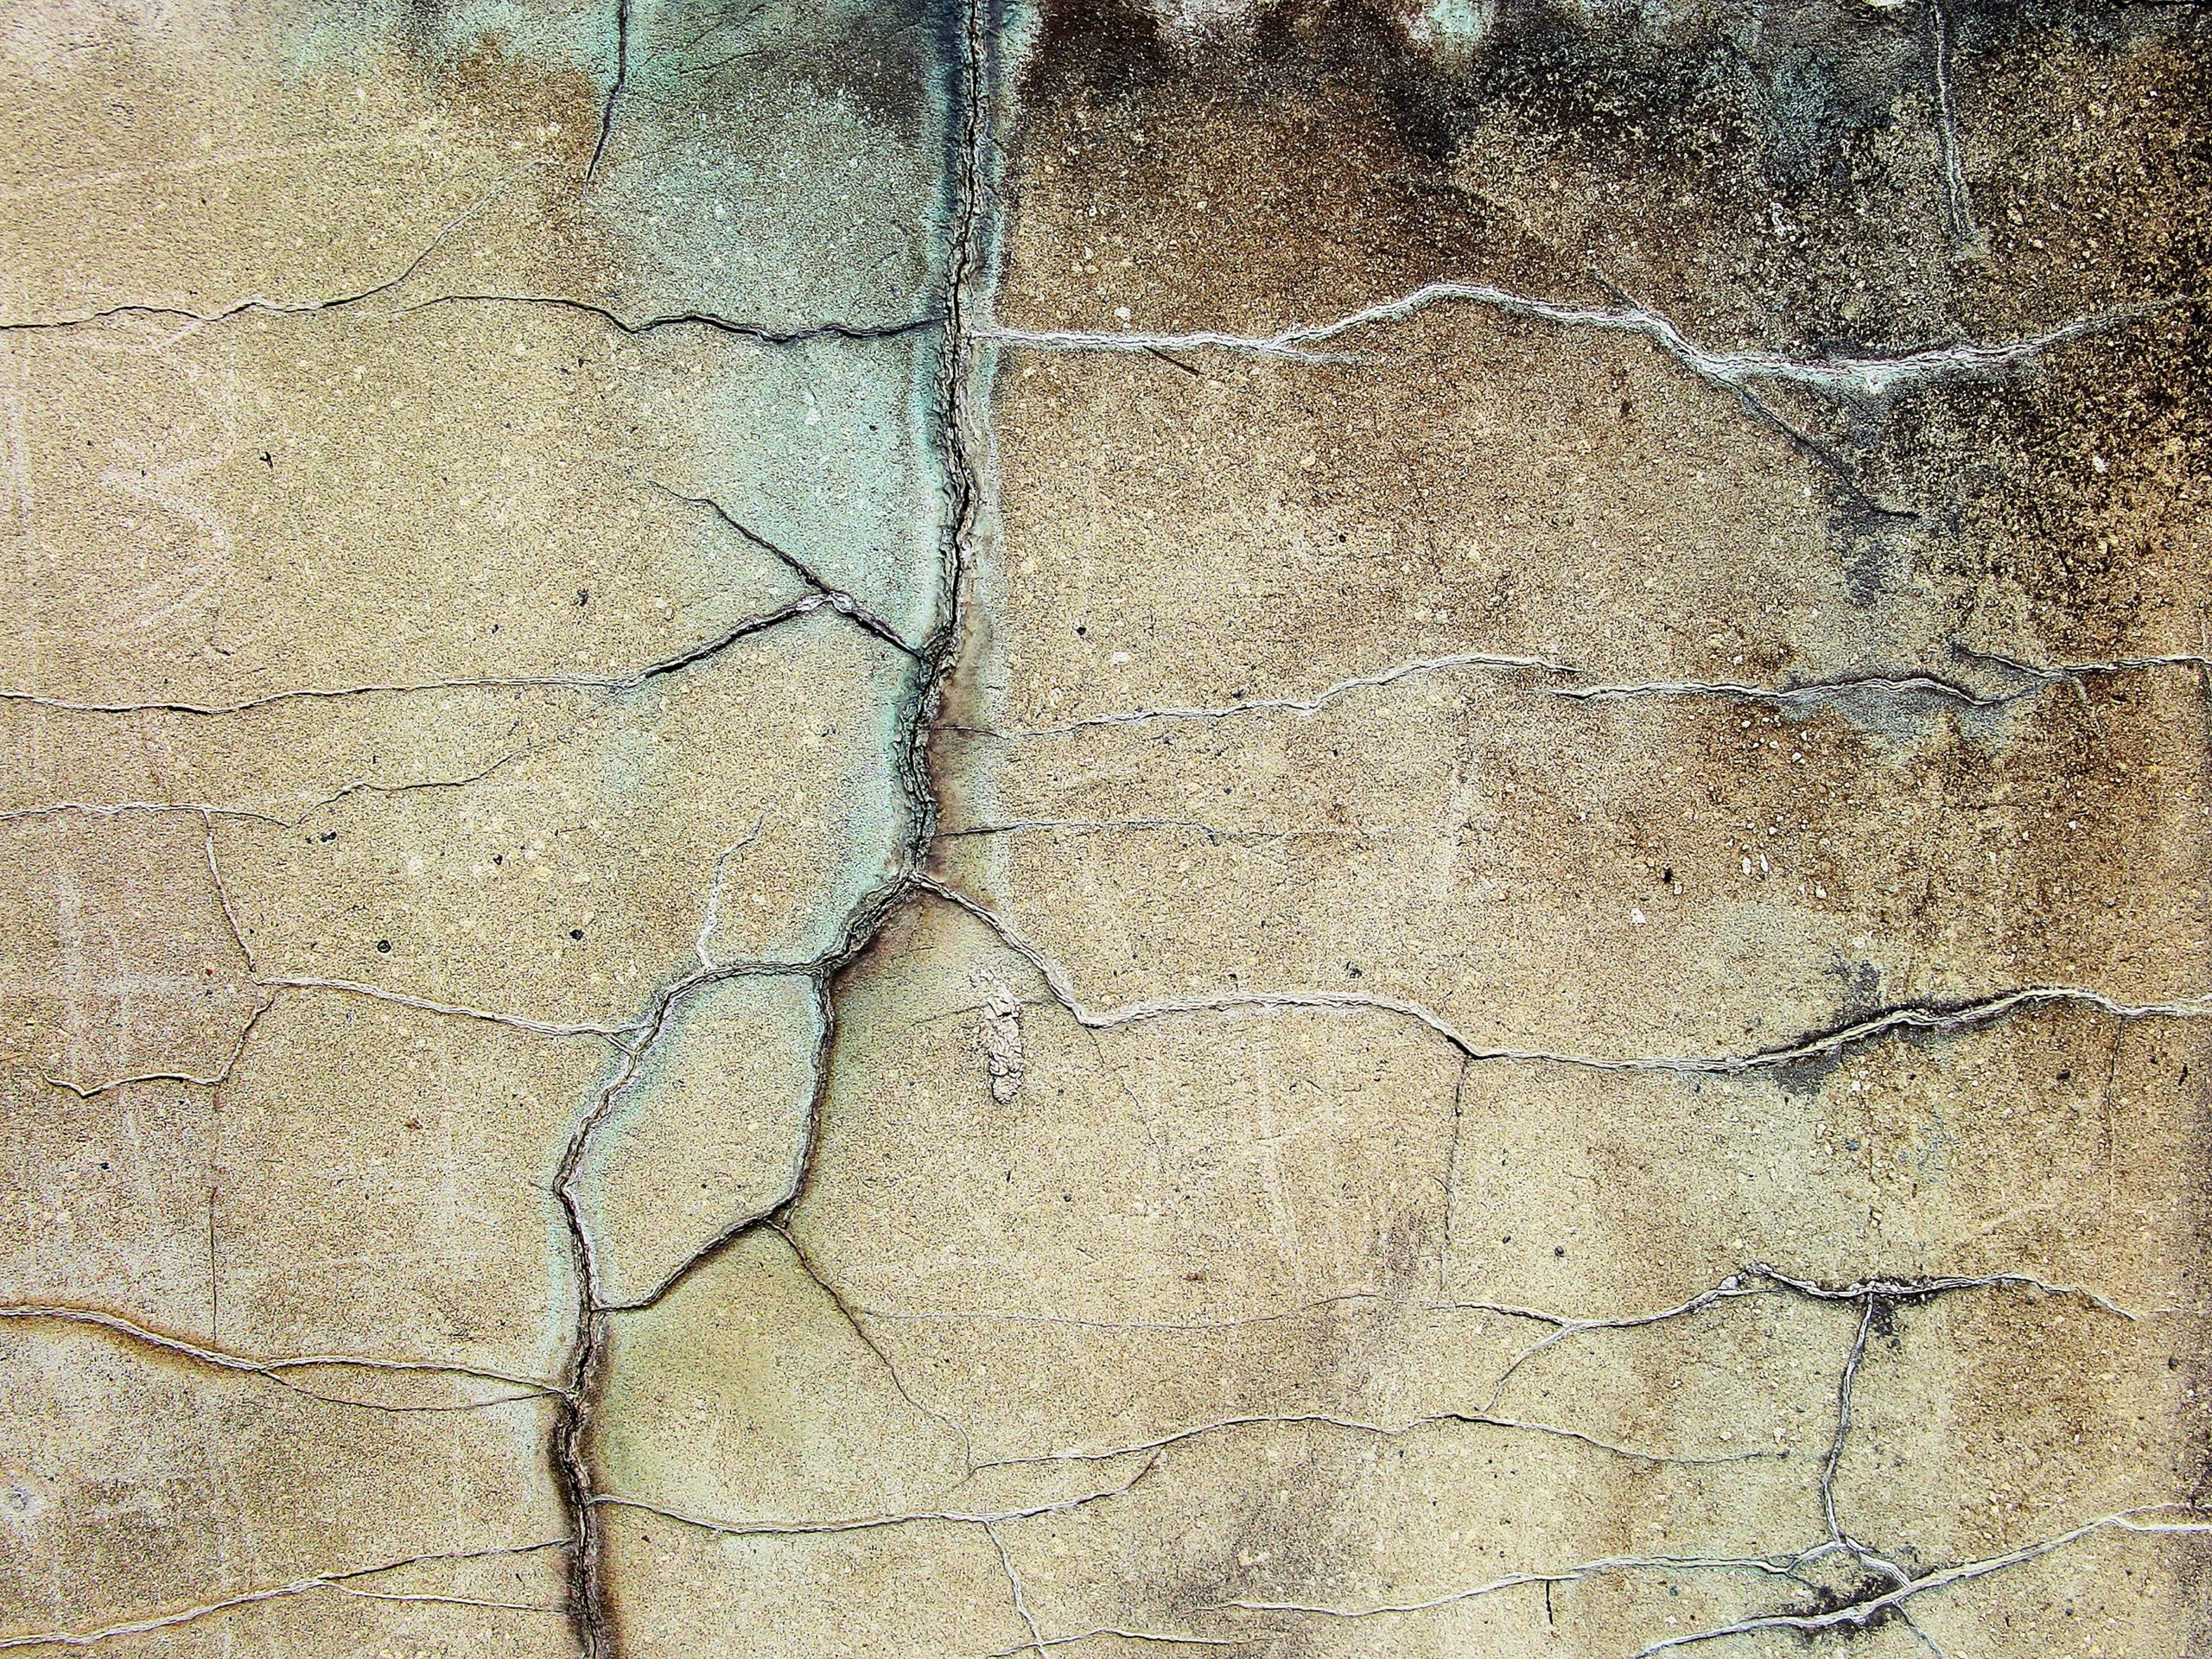 cracked brown concrete surface